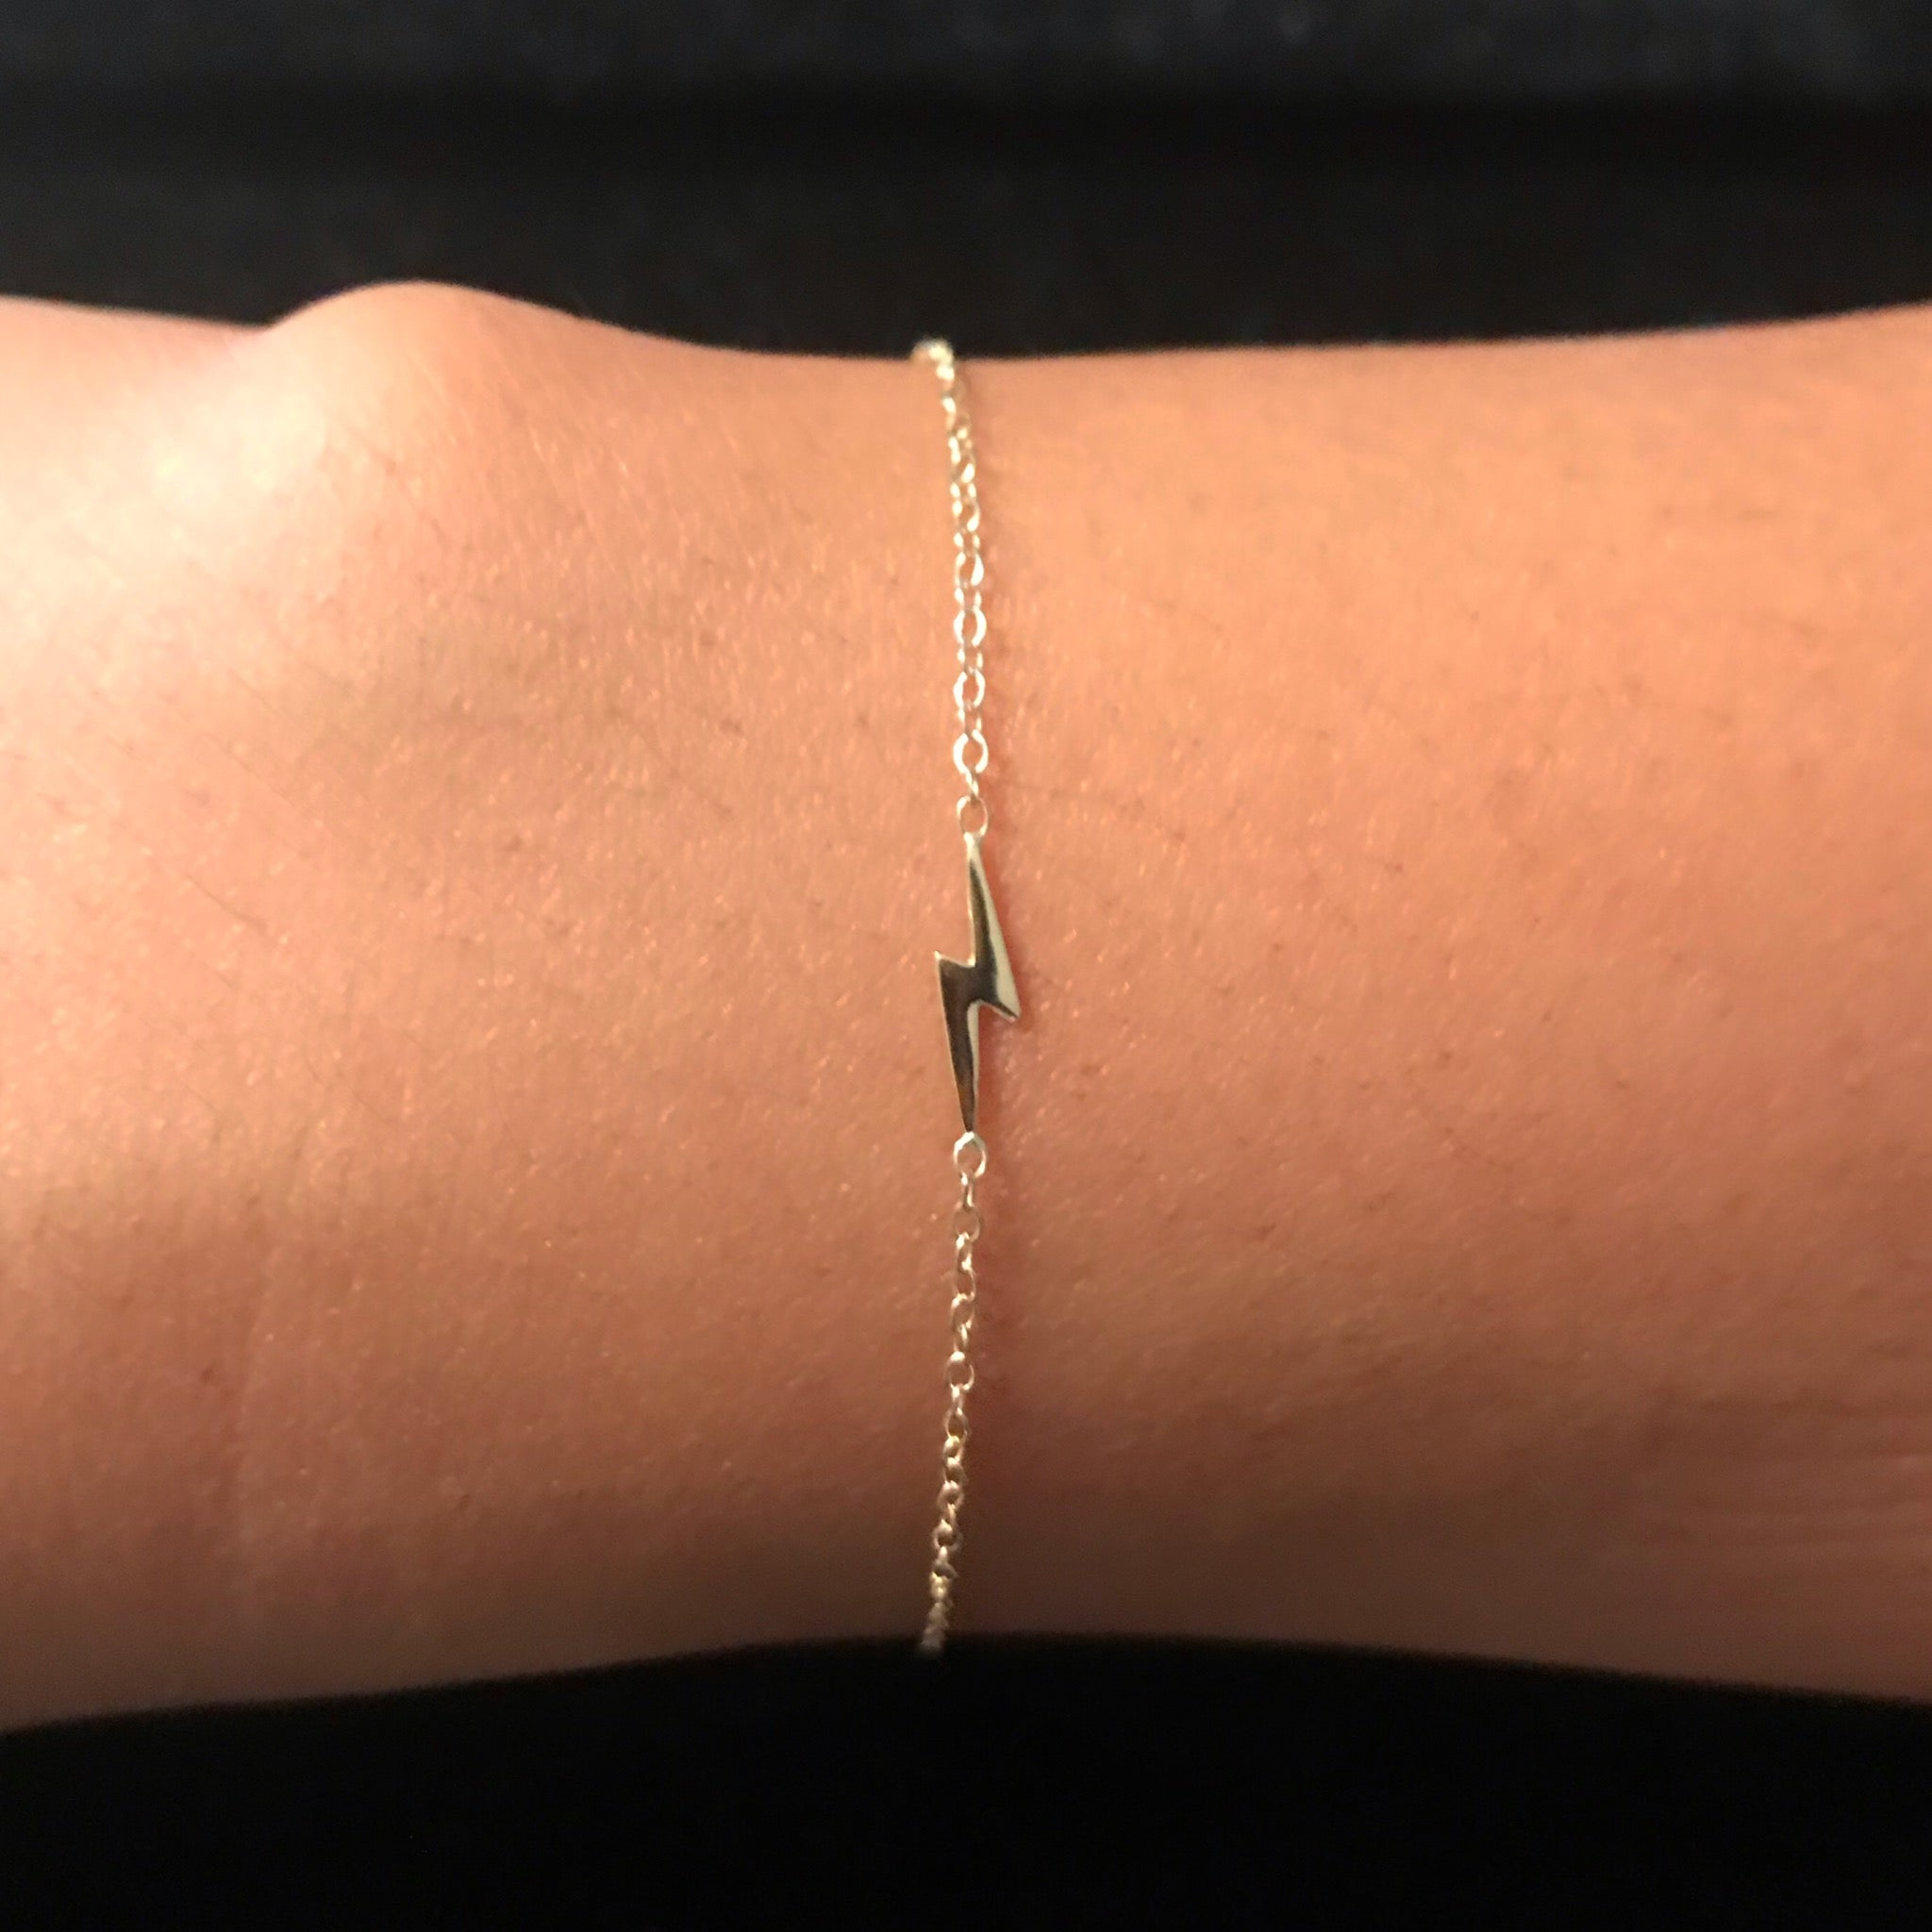 14K Gold Lightning Bolt Bracelet